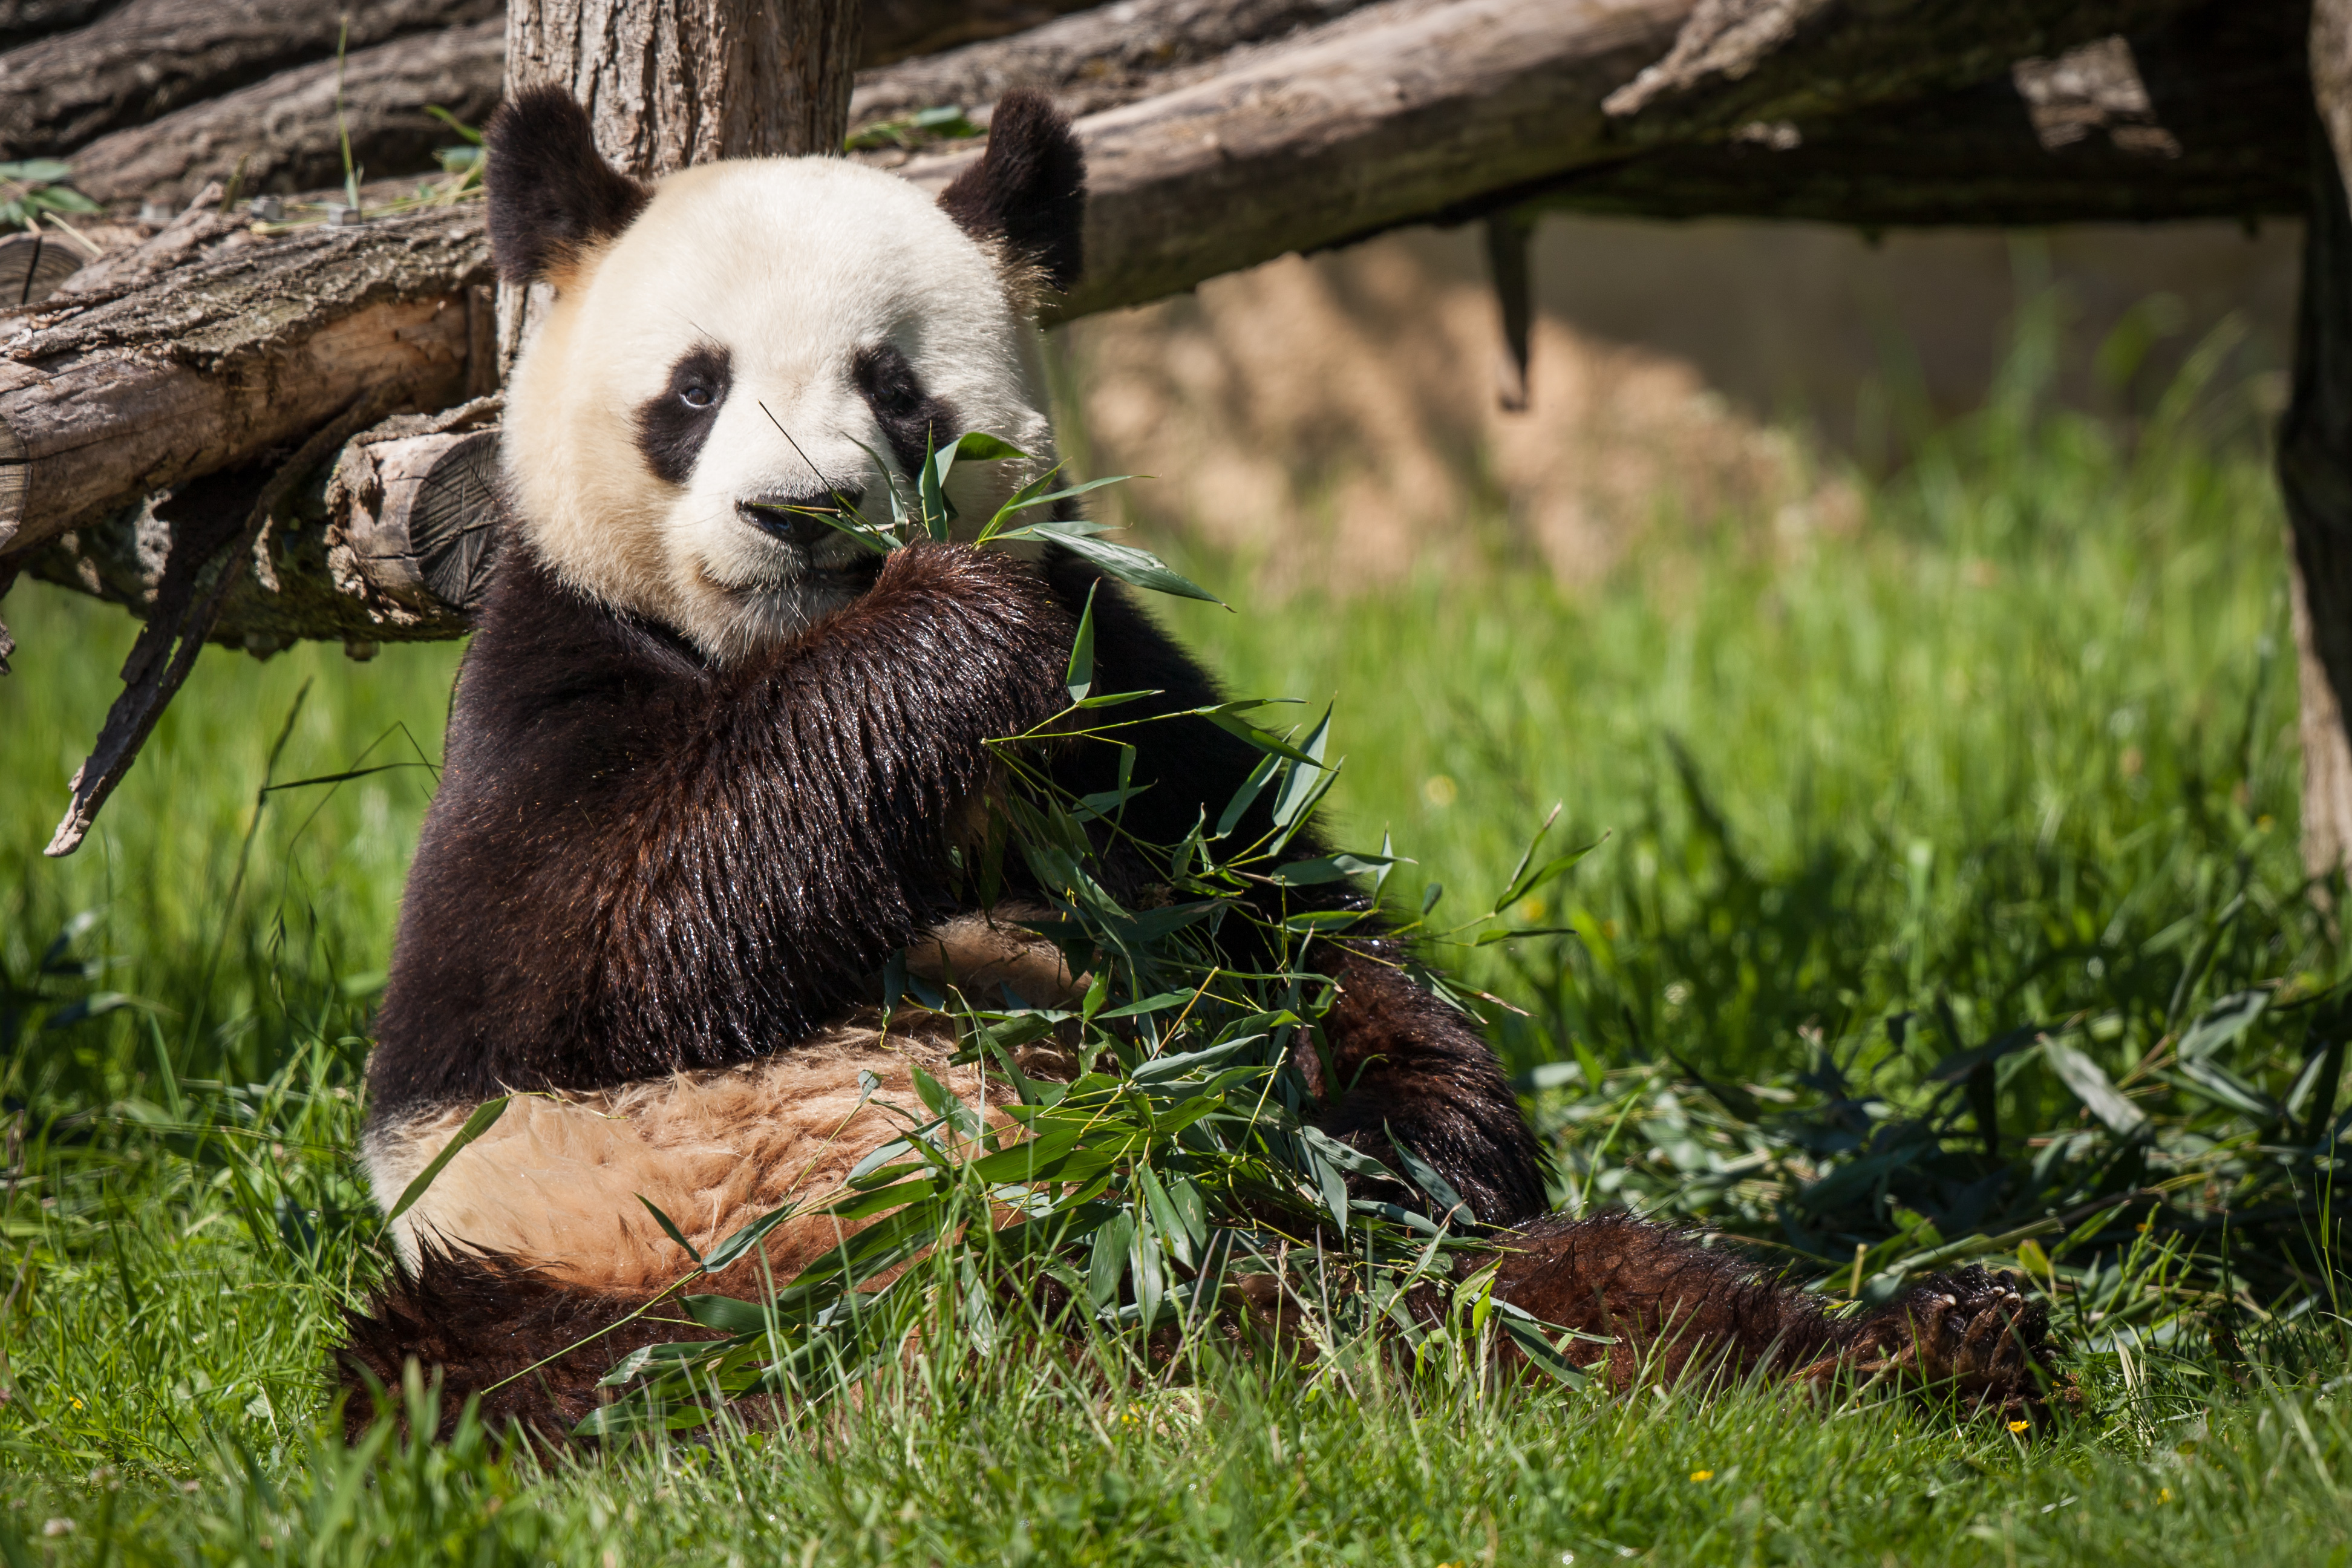 87650 download wallpaper Animals, Panda, Bear, Bamboo, Grass screensavers and pictures for free